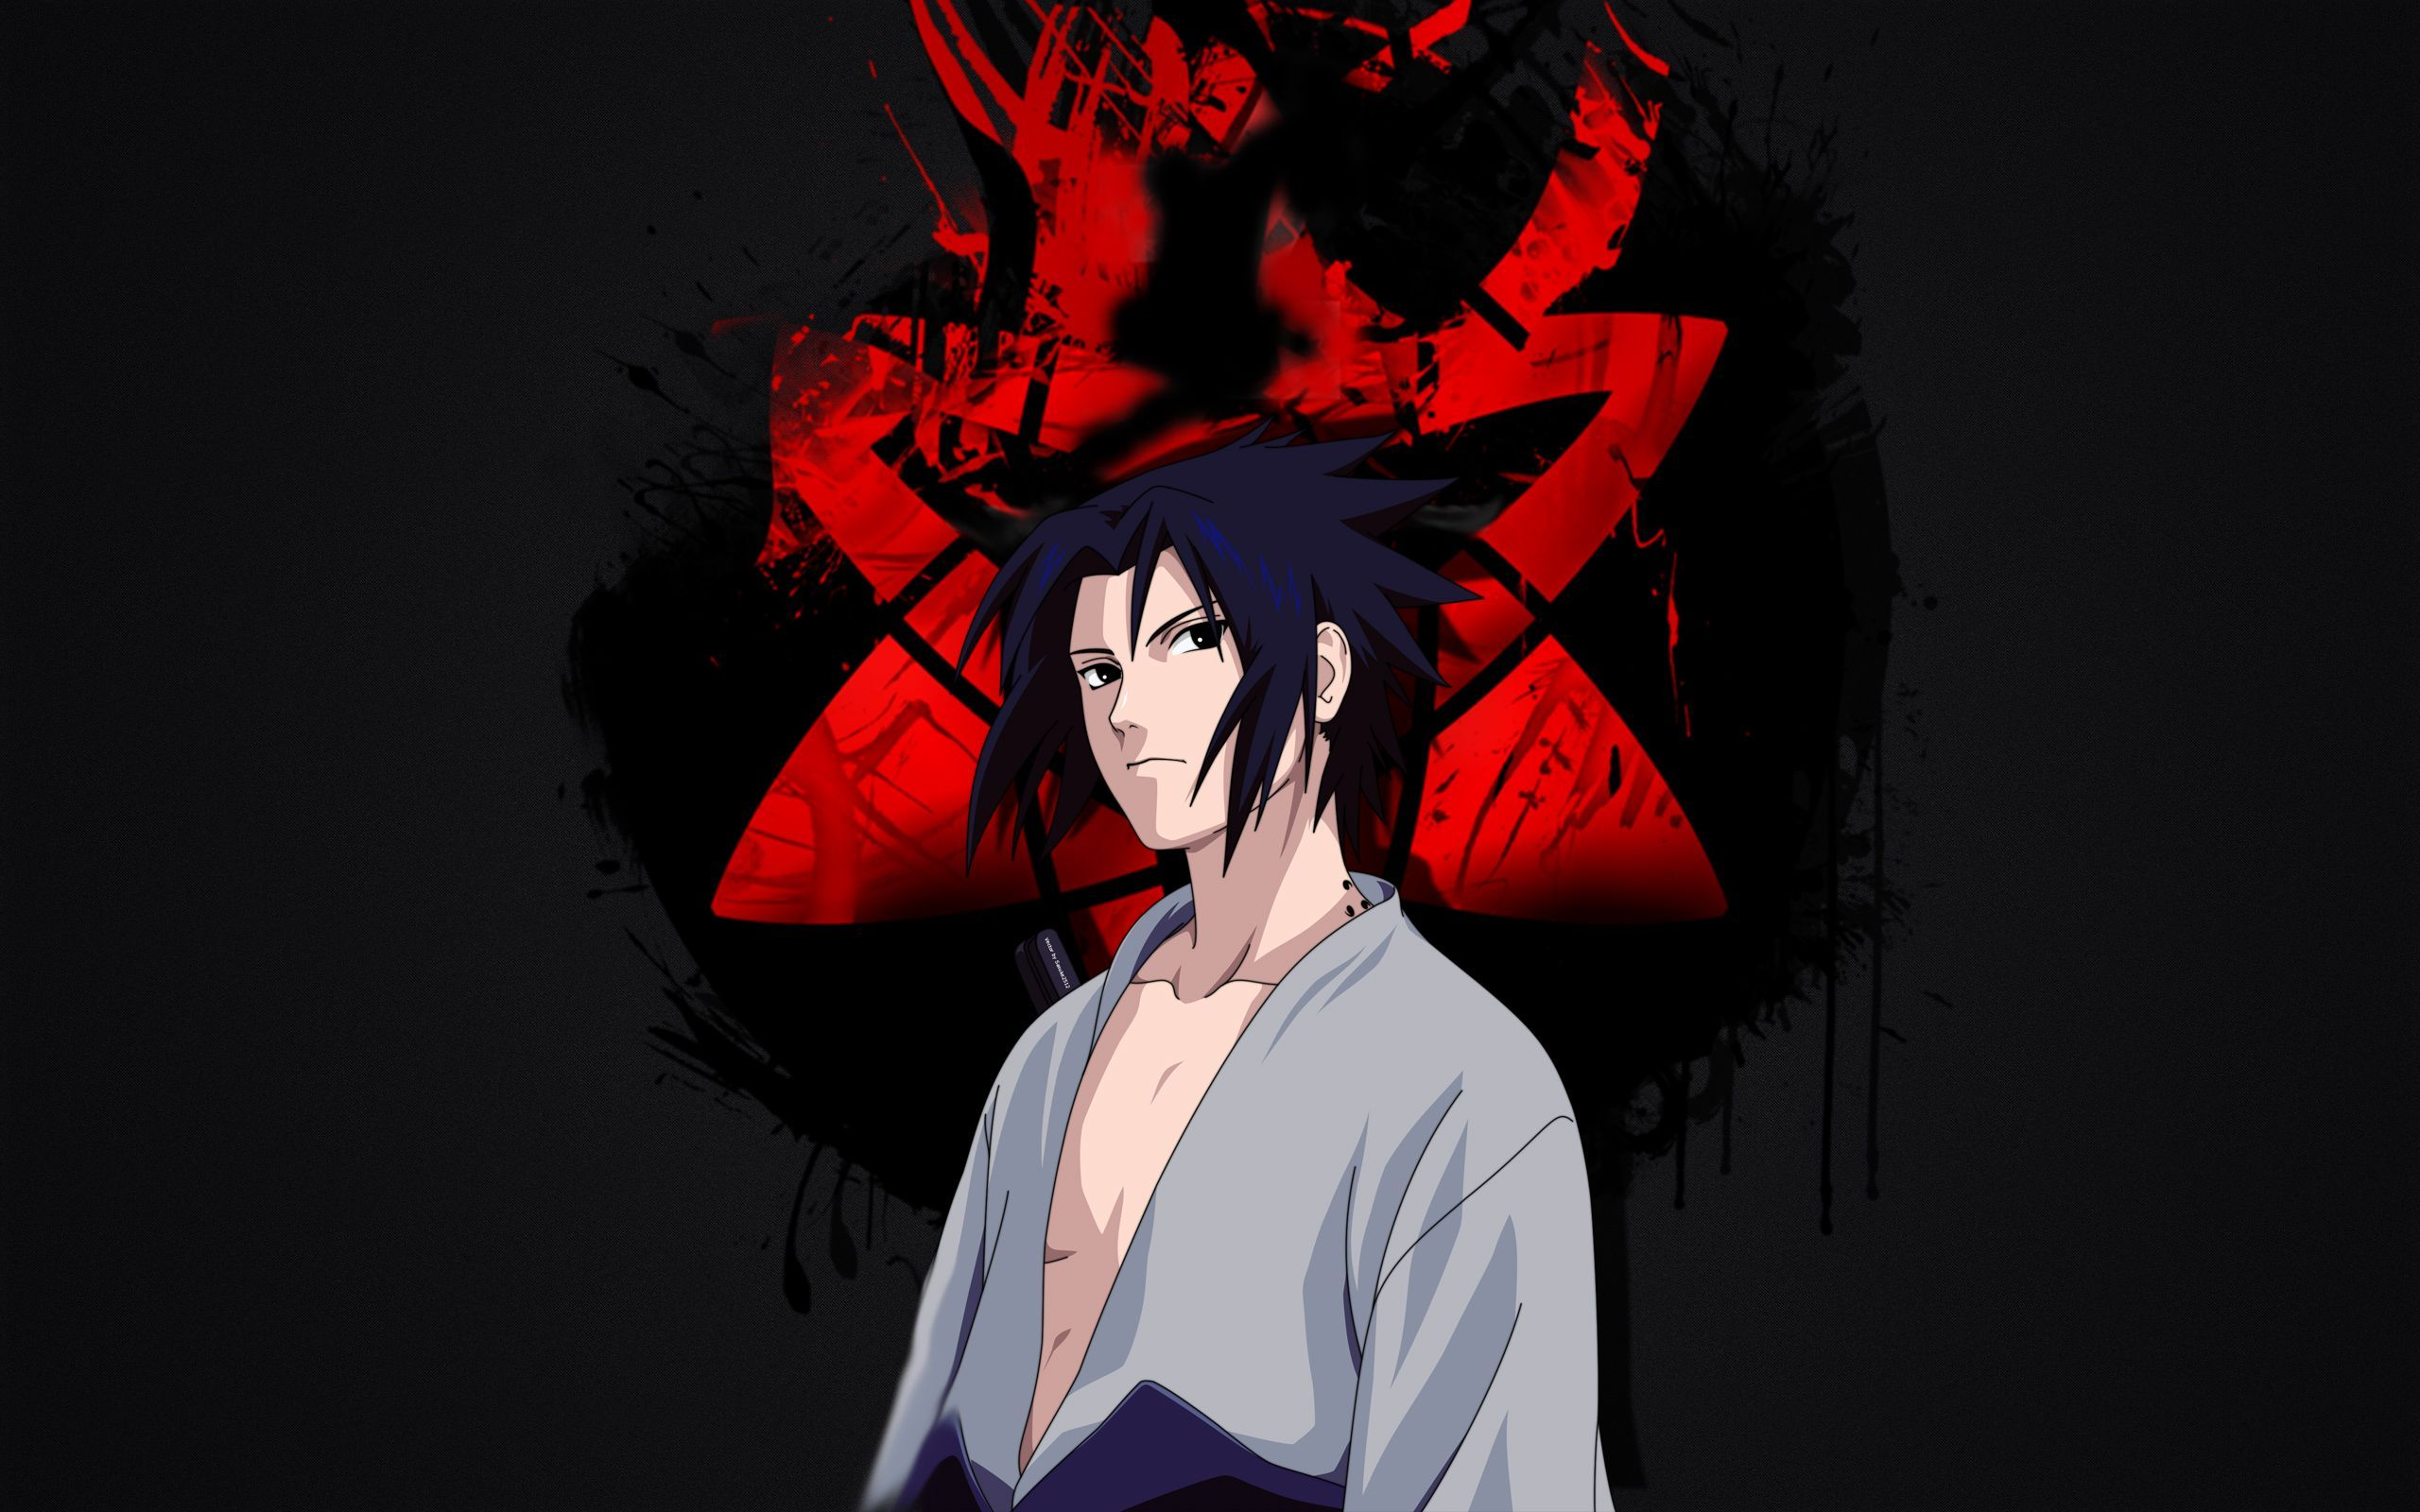 Download Gambar Naruto Bergerak Untuk Android Wallpaper Of Anime Naruto Sasuke In 2020 Naruto And Sasuke Wallpaper Naruto And Sasuke Sasuke Uchiha